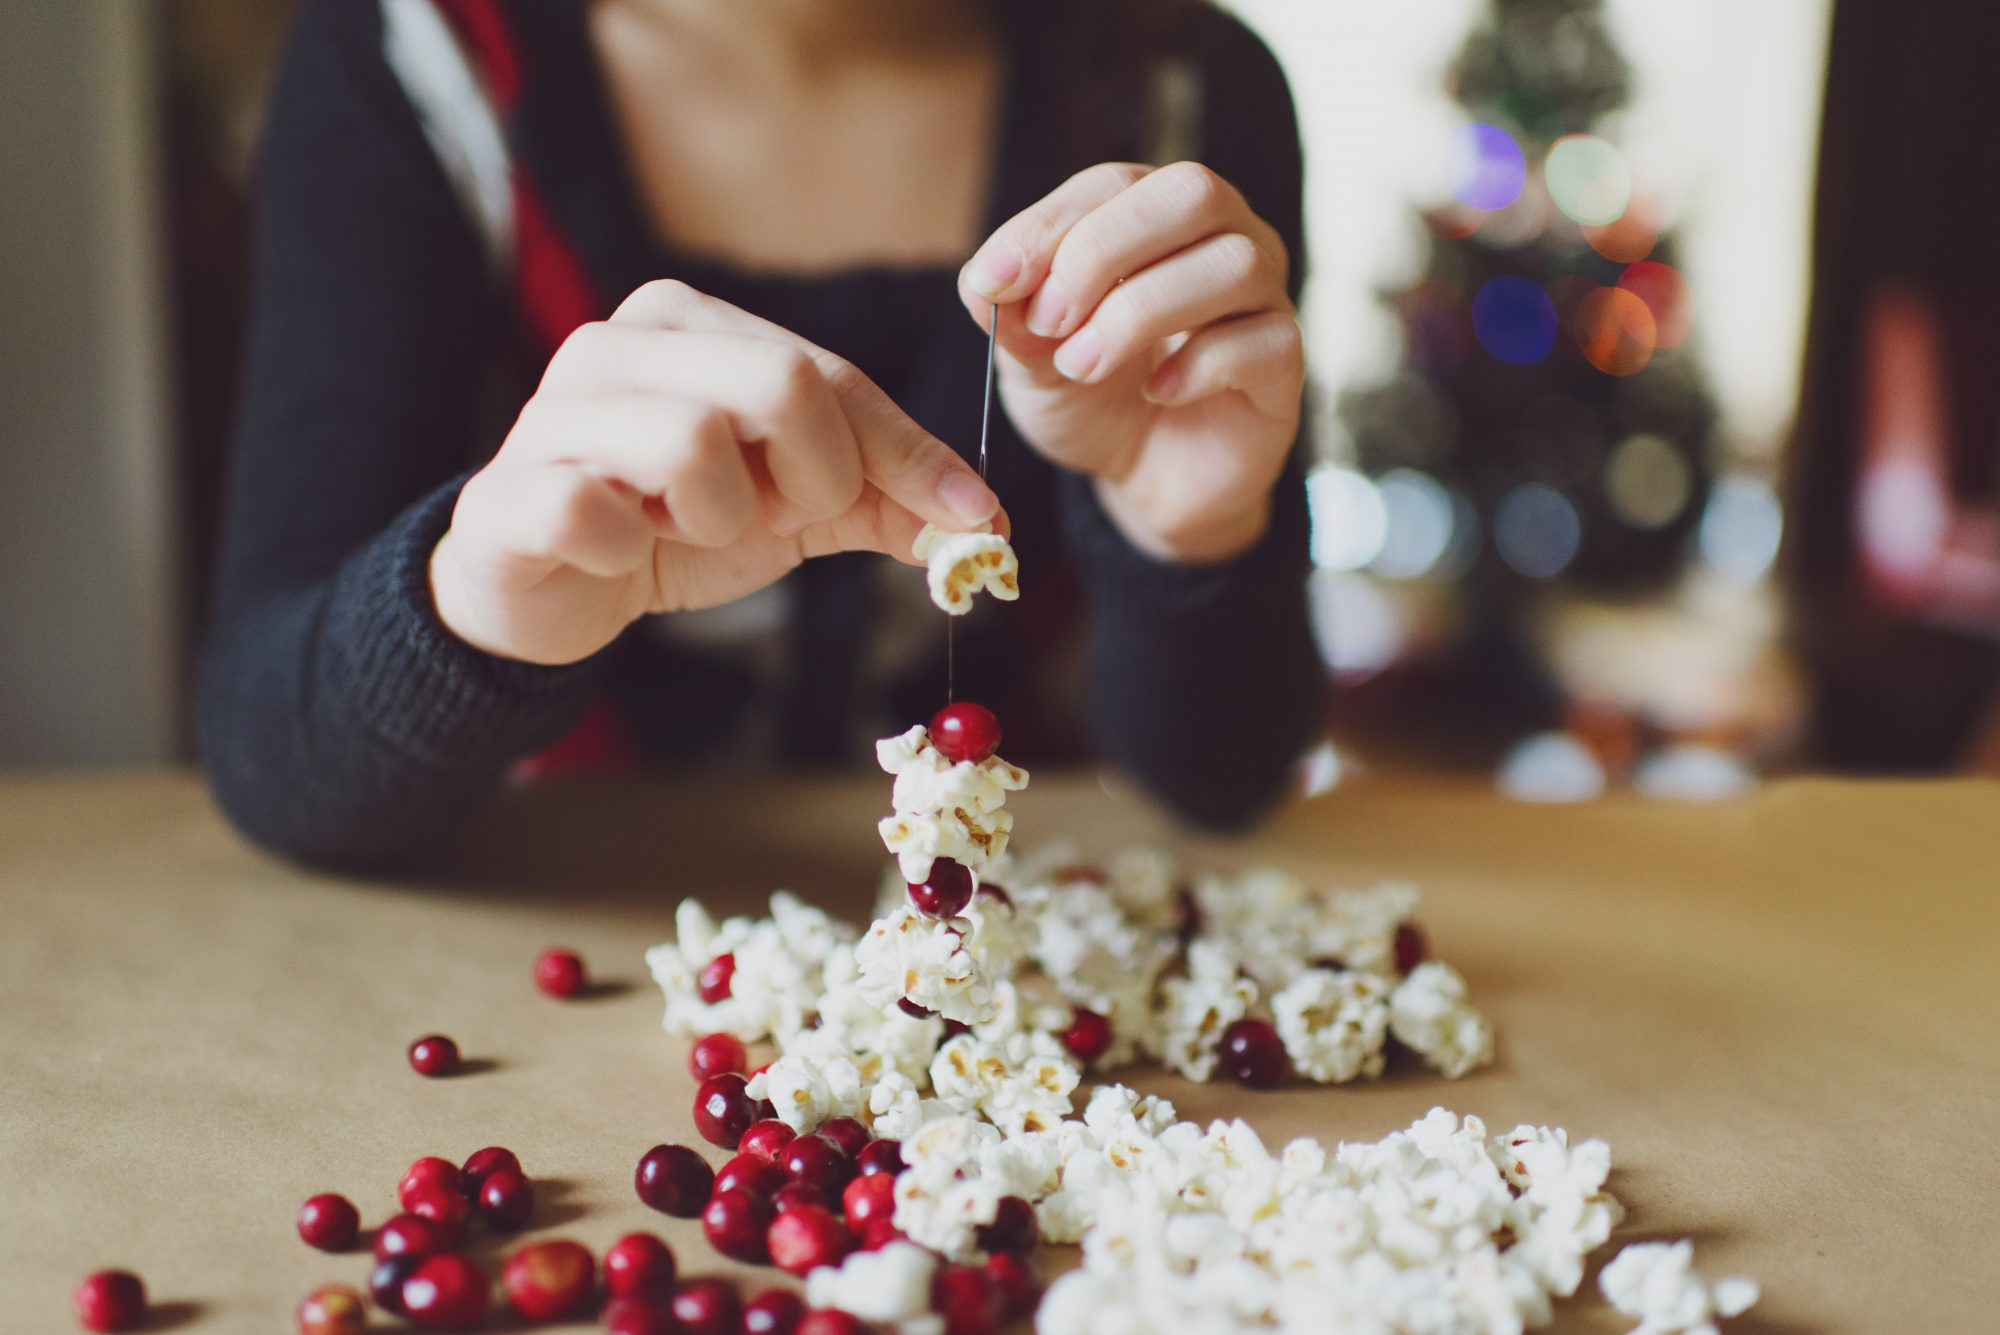 Making Christmas garland of fresh cranberries and popcorn.